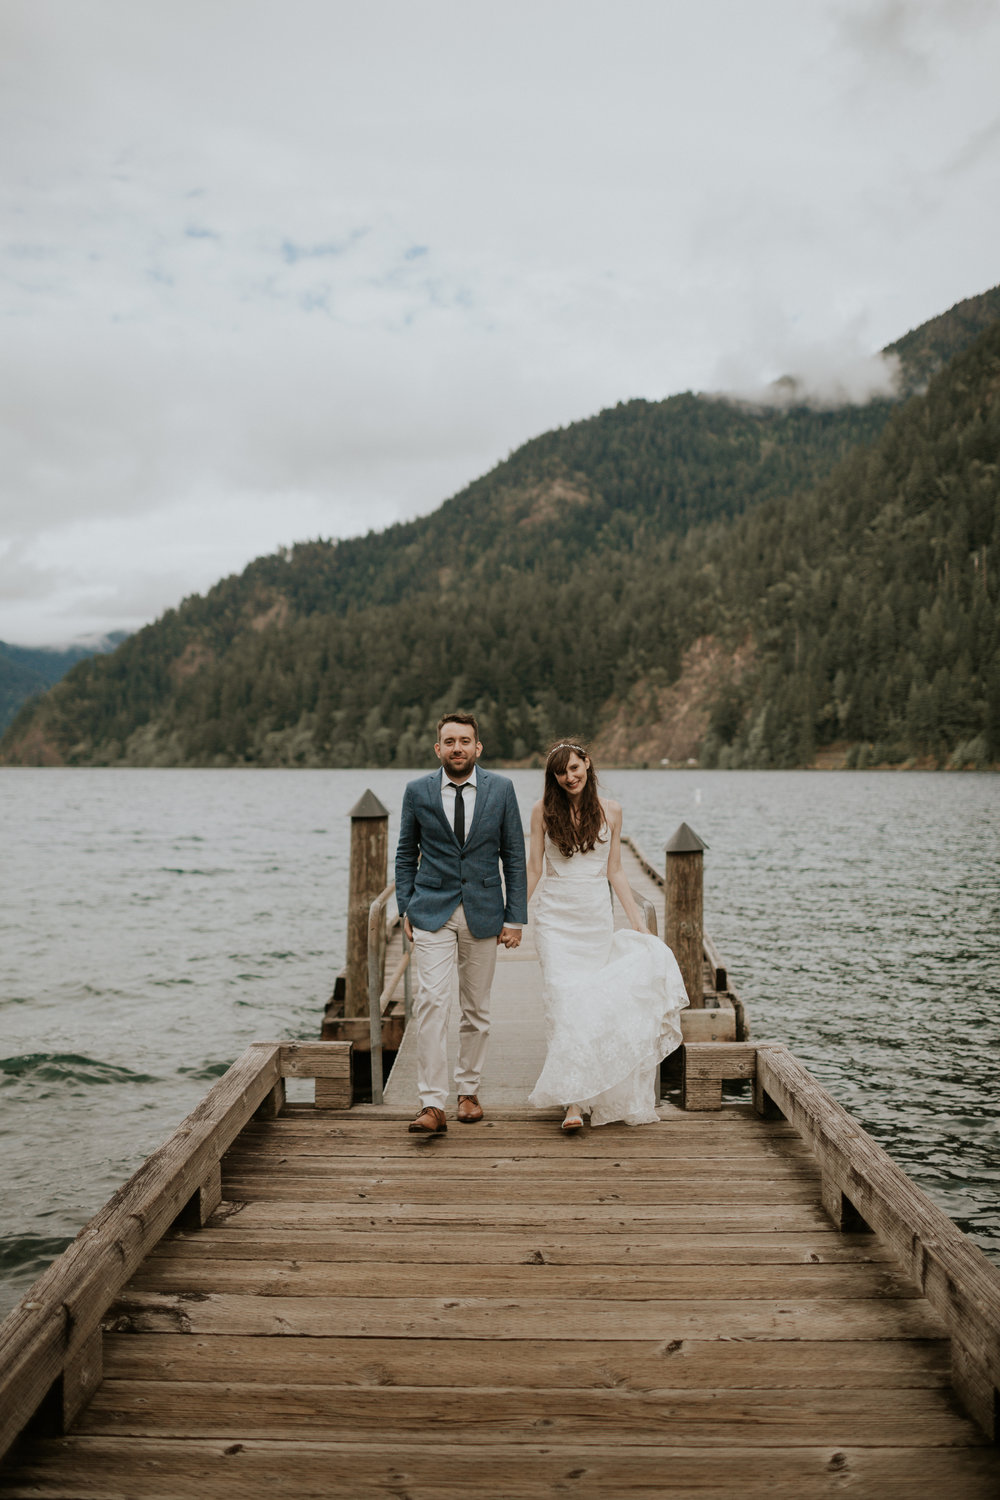 PNW-elopement-wedding-engagement-olympic national park-port angeles-hurricane ridge-lake crescent-kayla dawn photography- photographer-photography-kayladawnphoto-244.jpg